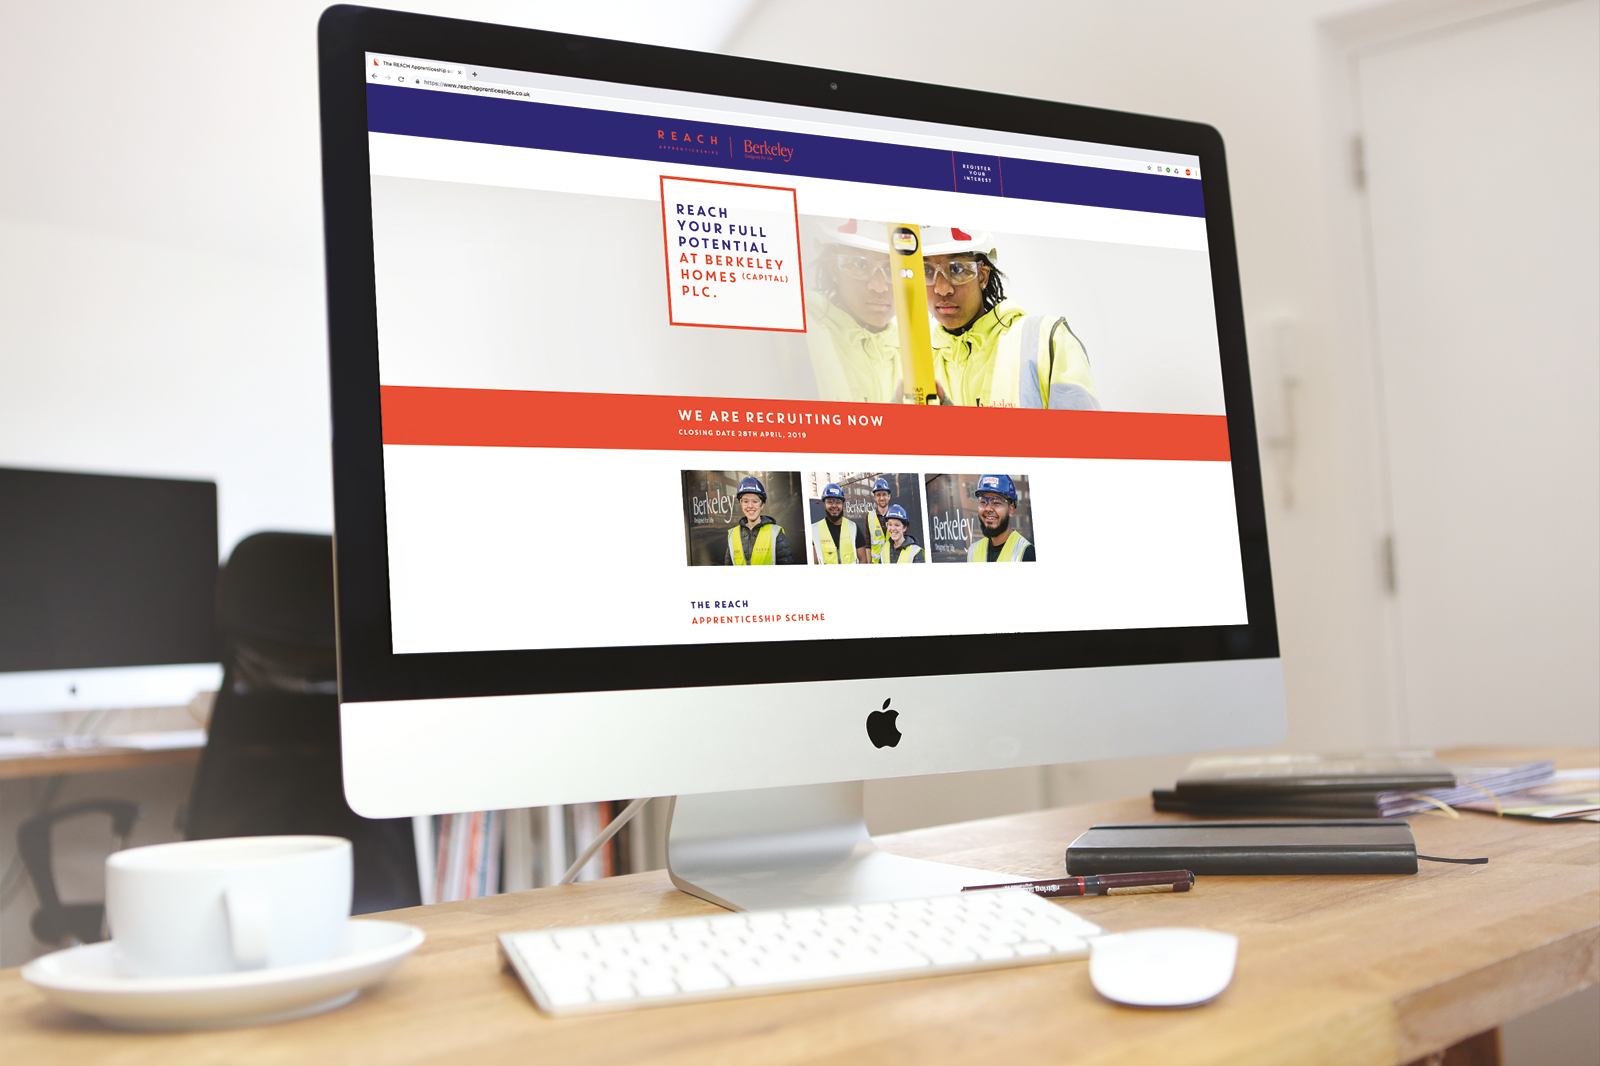 Fully responsive, bespoke website design and build for Berkeley Homes new REACH Apprenticeships programme